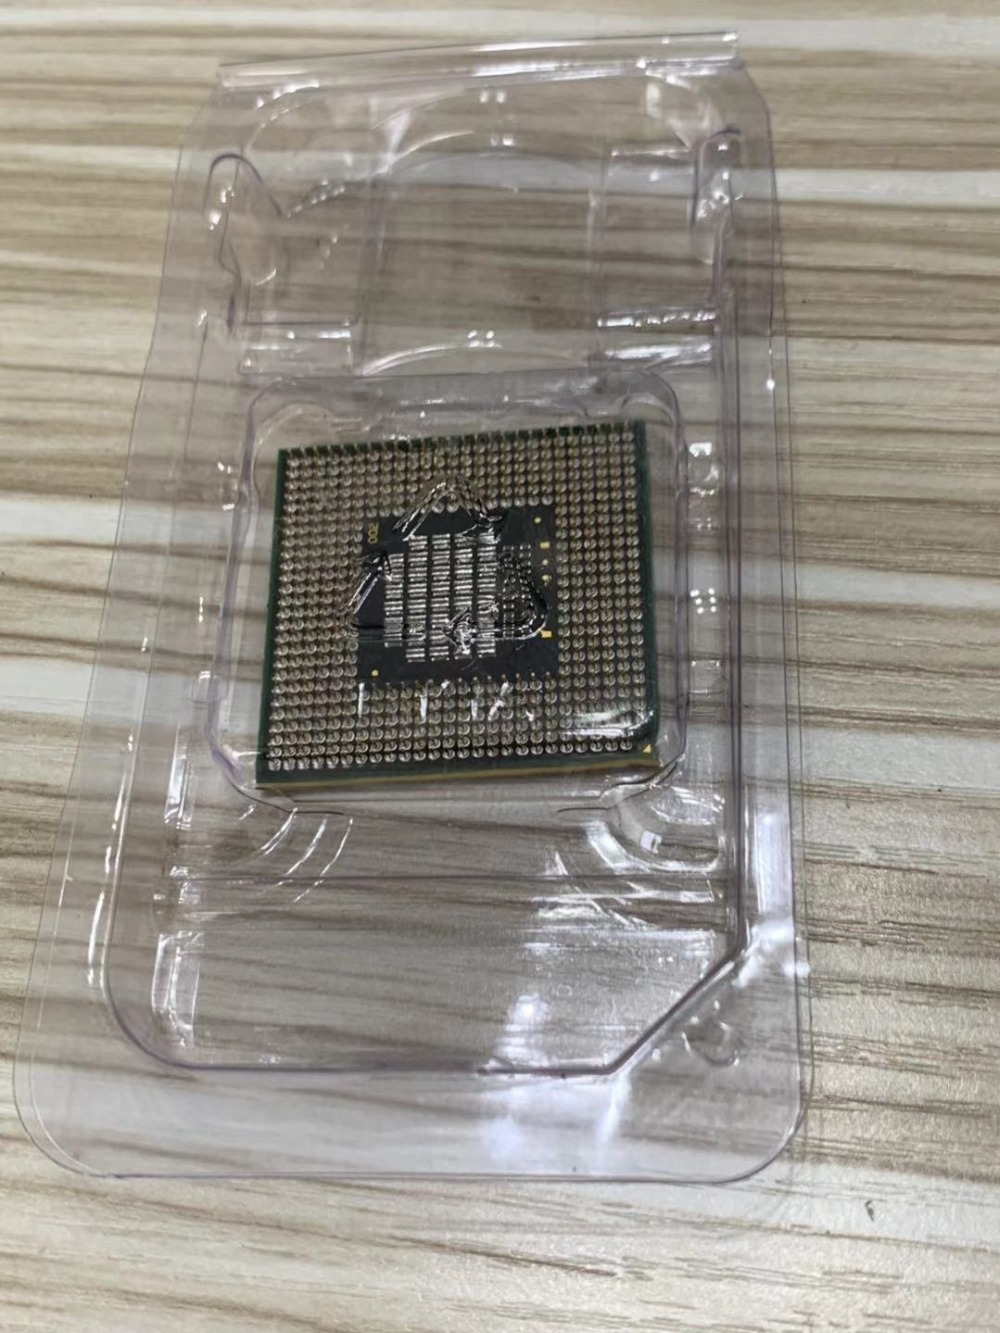 T7200 7200 SL9SF CPU 4M Socket 479 (Cache/2.0GHz/667/Dual-Core) Laptop processor